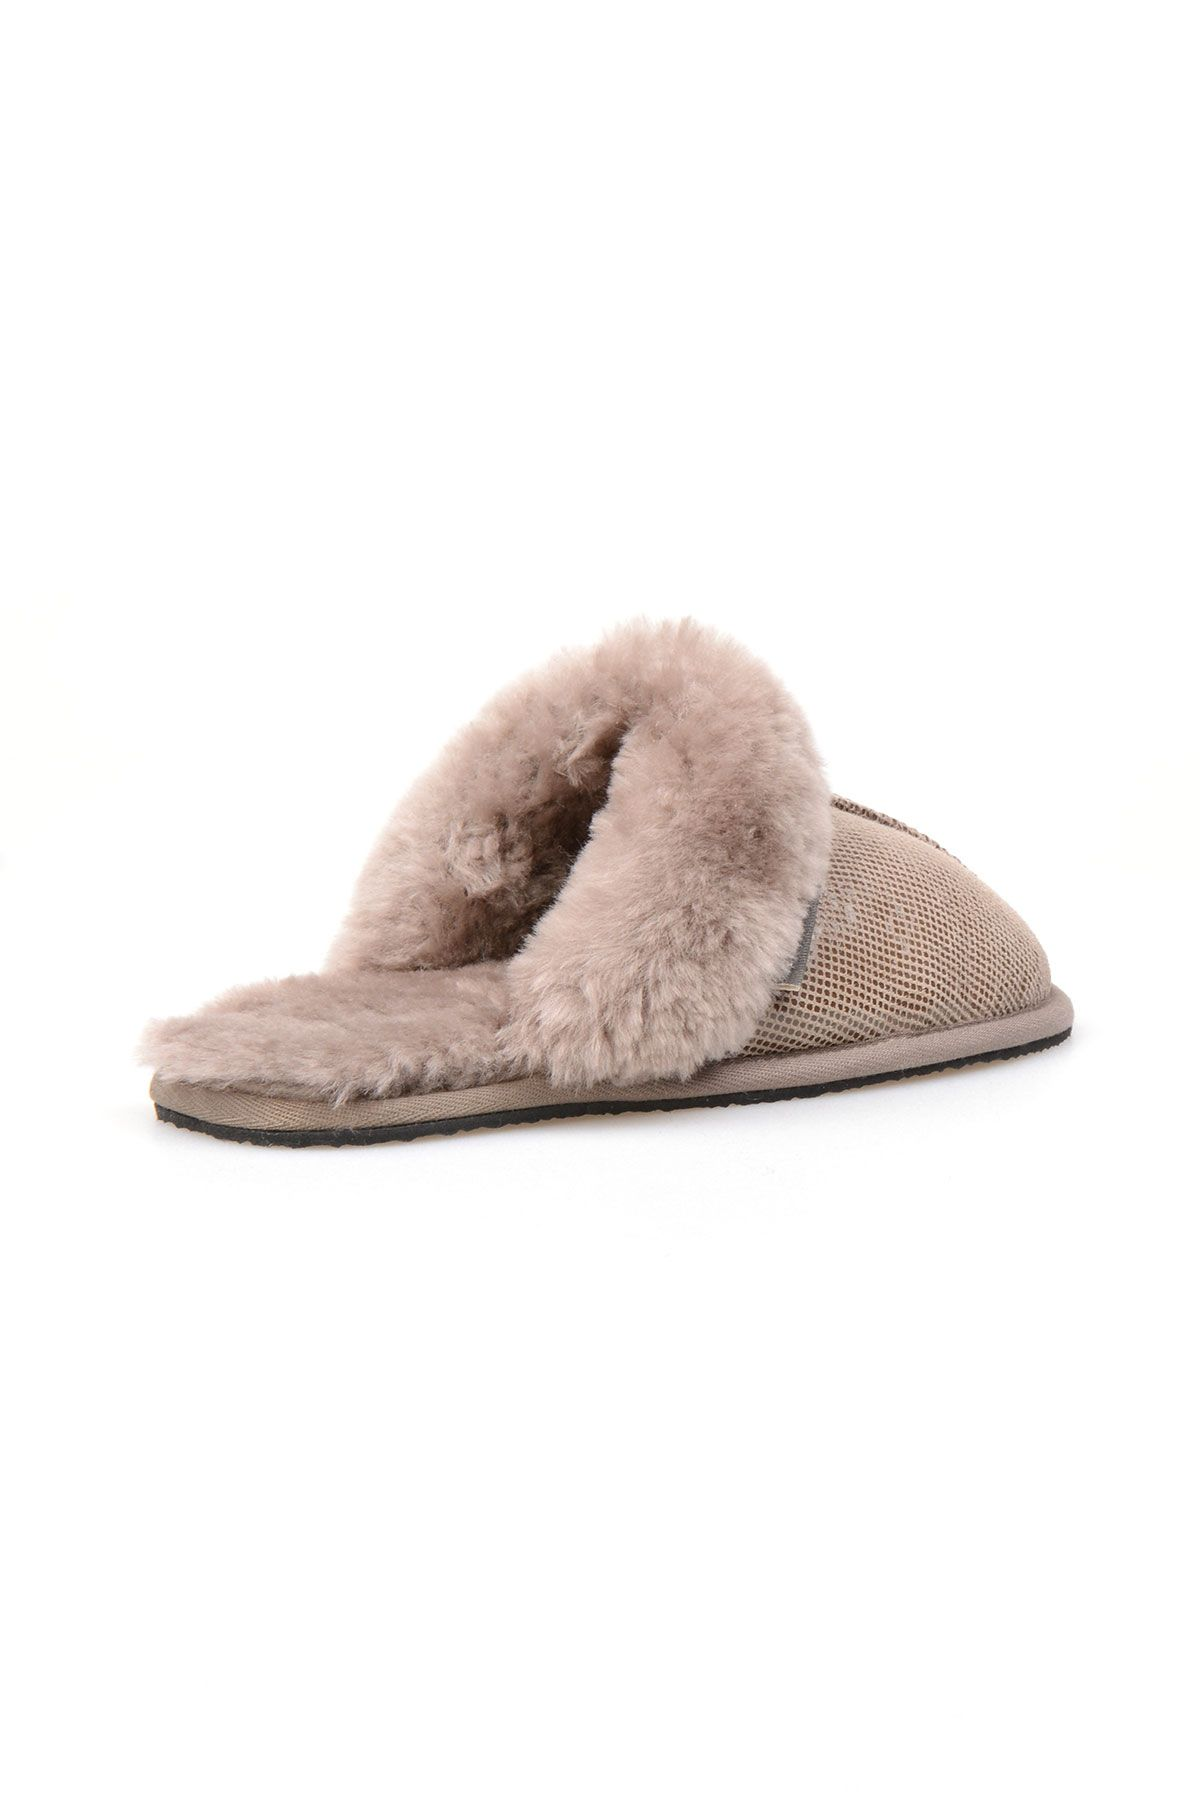 Pegia Genuine Sheepskin Women's House Slippers 191104 Sand-colored